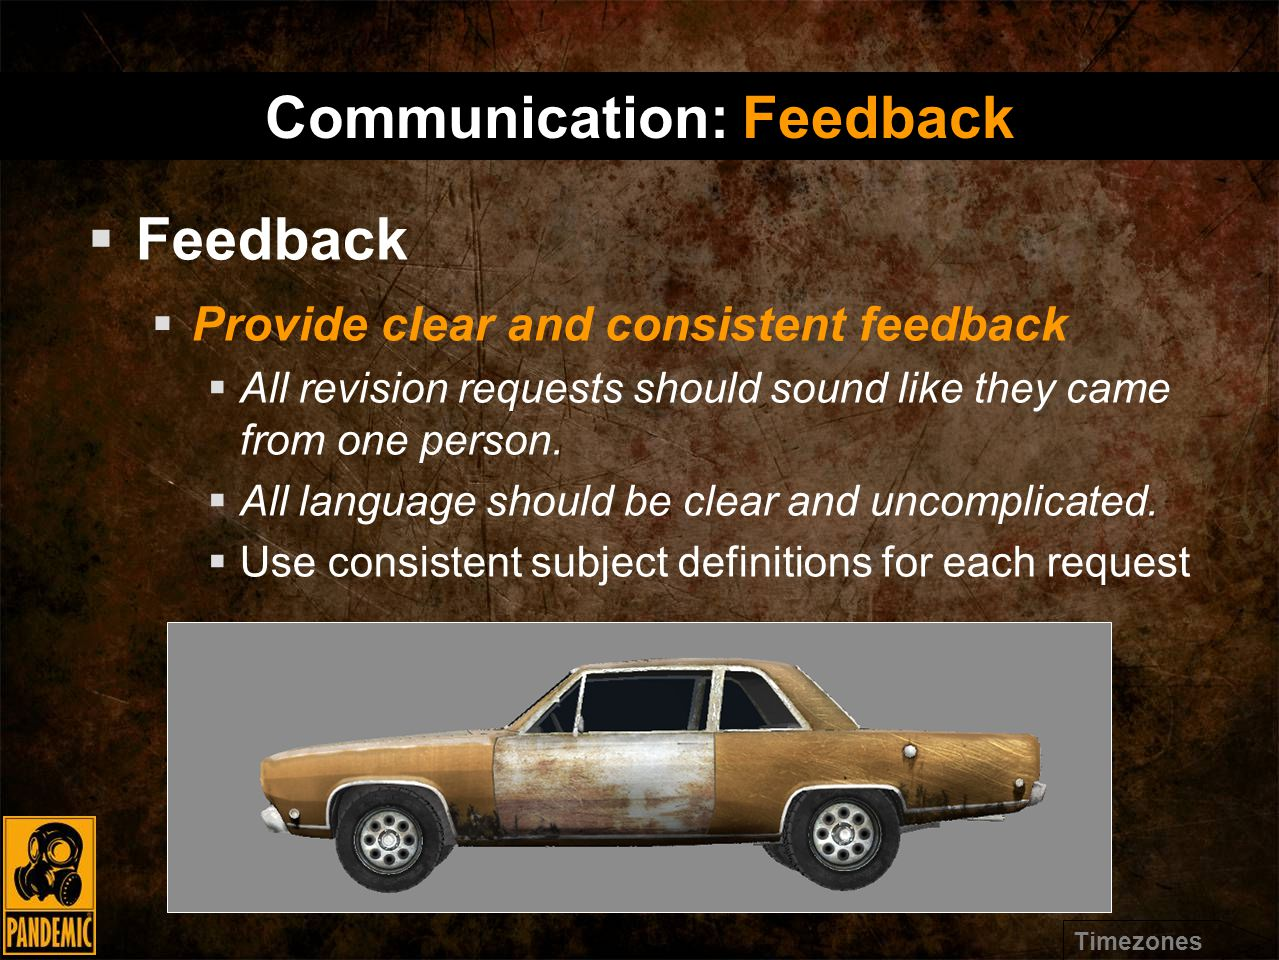  Feedback  Provide clear and consistent feedback  All revision requests should sound like they came from one person.